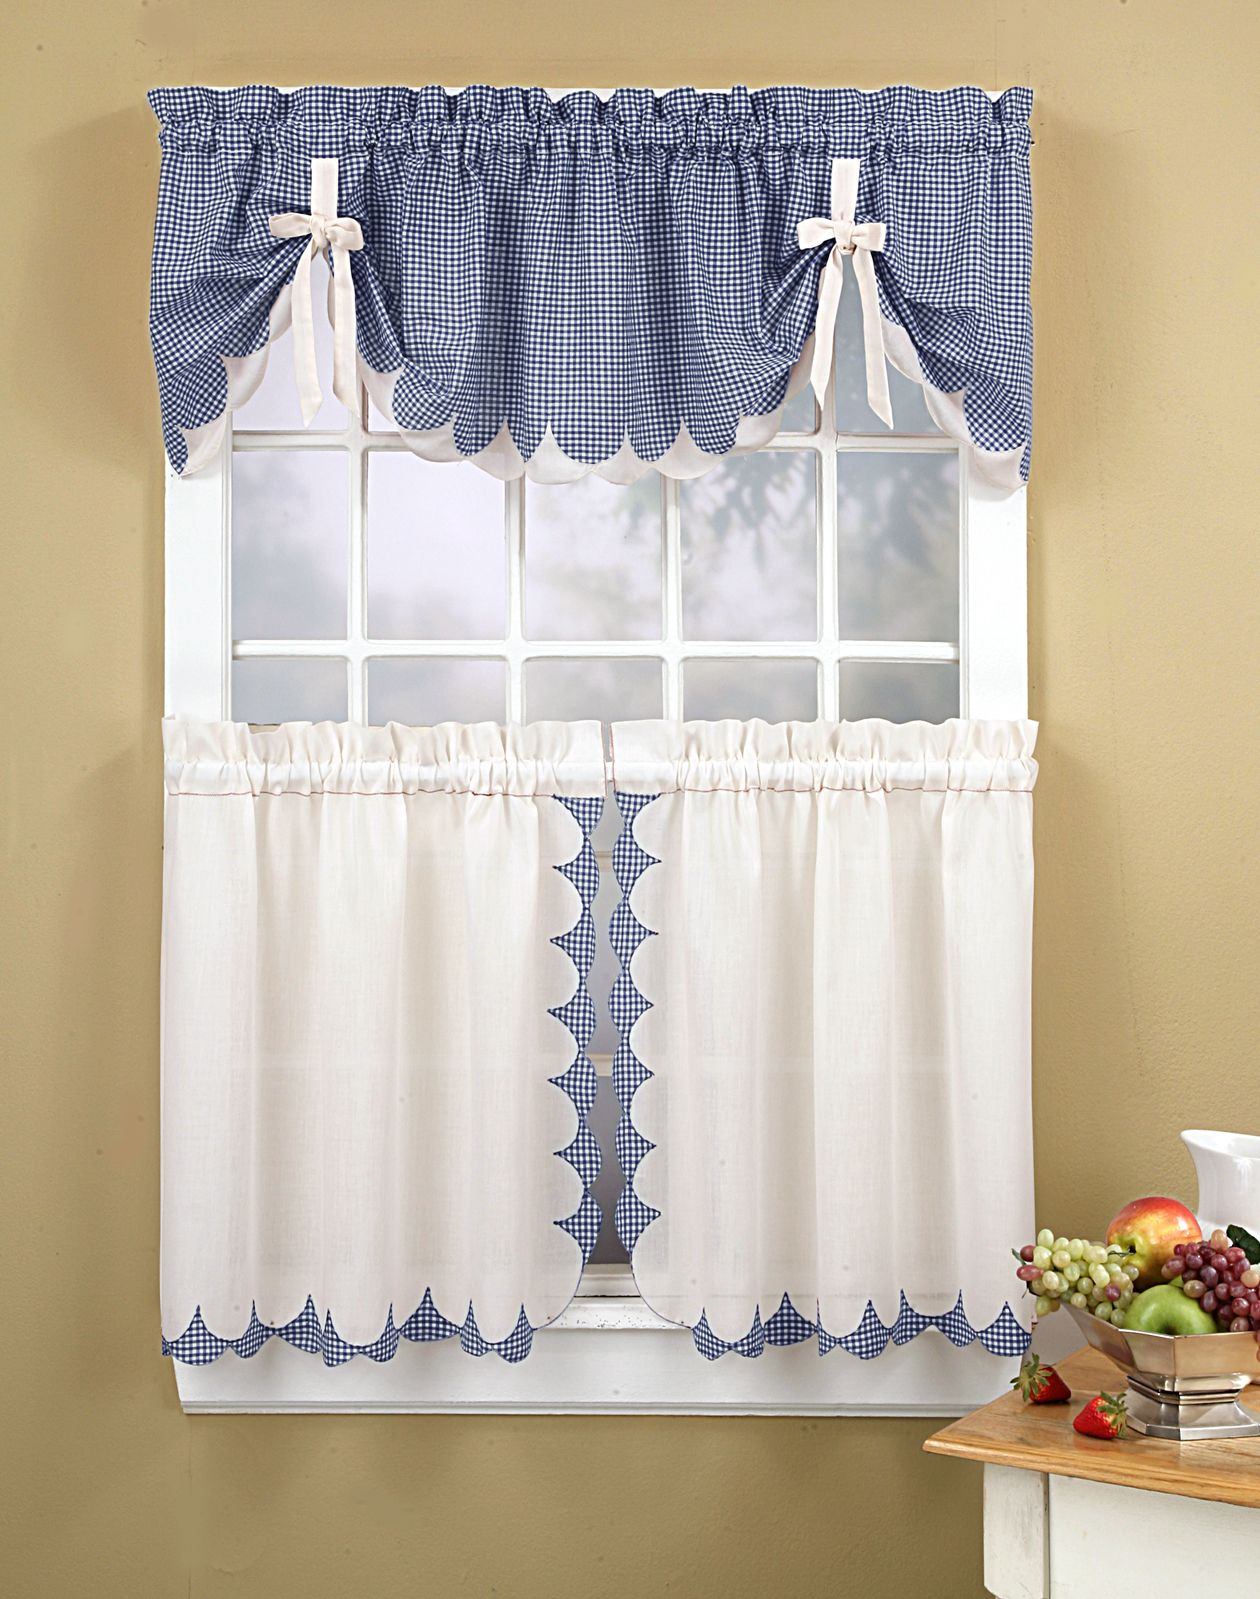 Kitchen curtains tabitha 3 piece kitchen curtain tier for 3 window curtain design